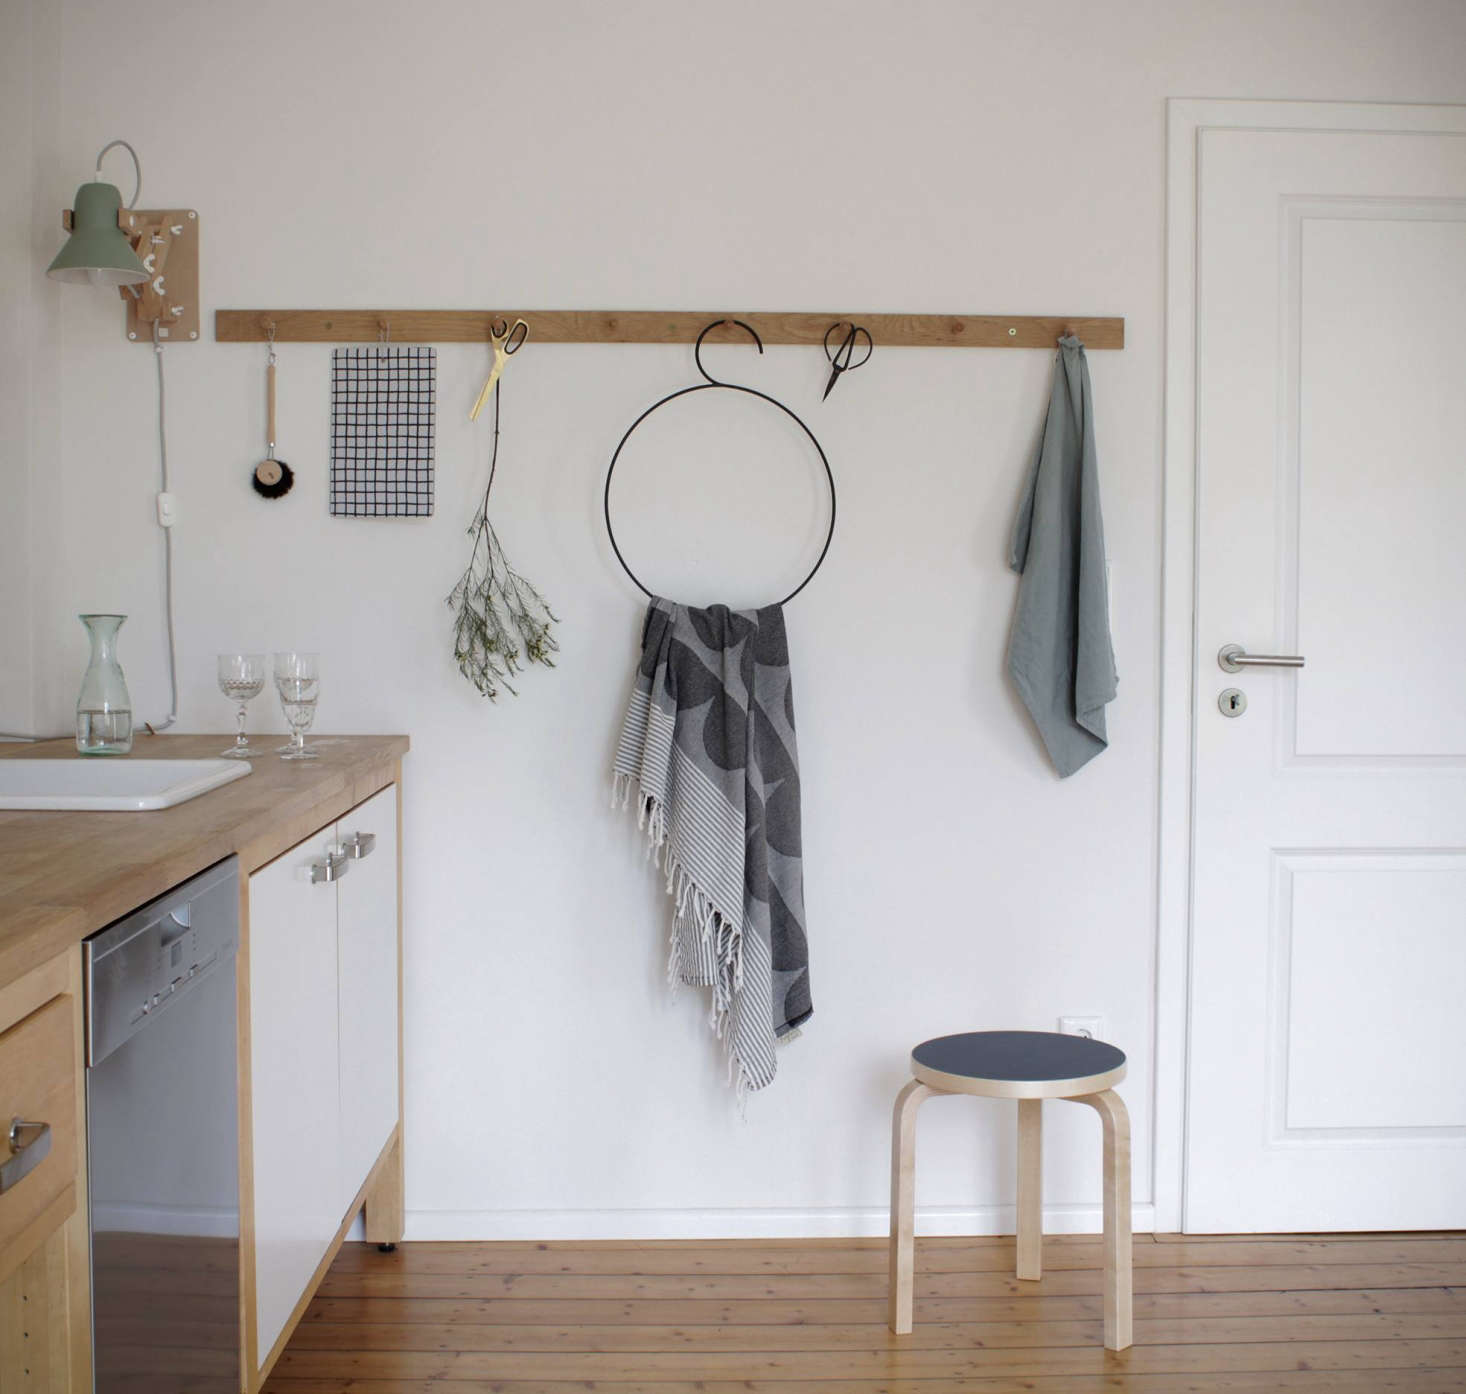 An illustrator and graphic designer installed a peg rail along an empty wall in her kitchen, an opportunity for both practical storage and artful display. See Kitchen of the Week: An Artful Kitchen Created from Reclaimed Ikea Parts, Extreme Budget Edition for more of the kitchen.